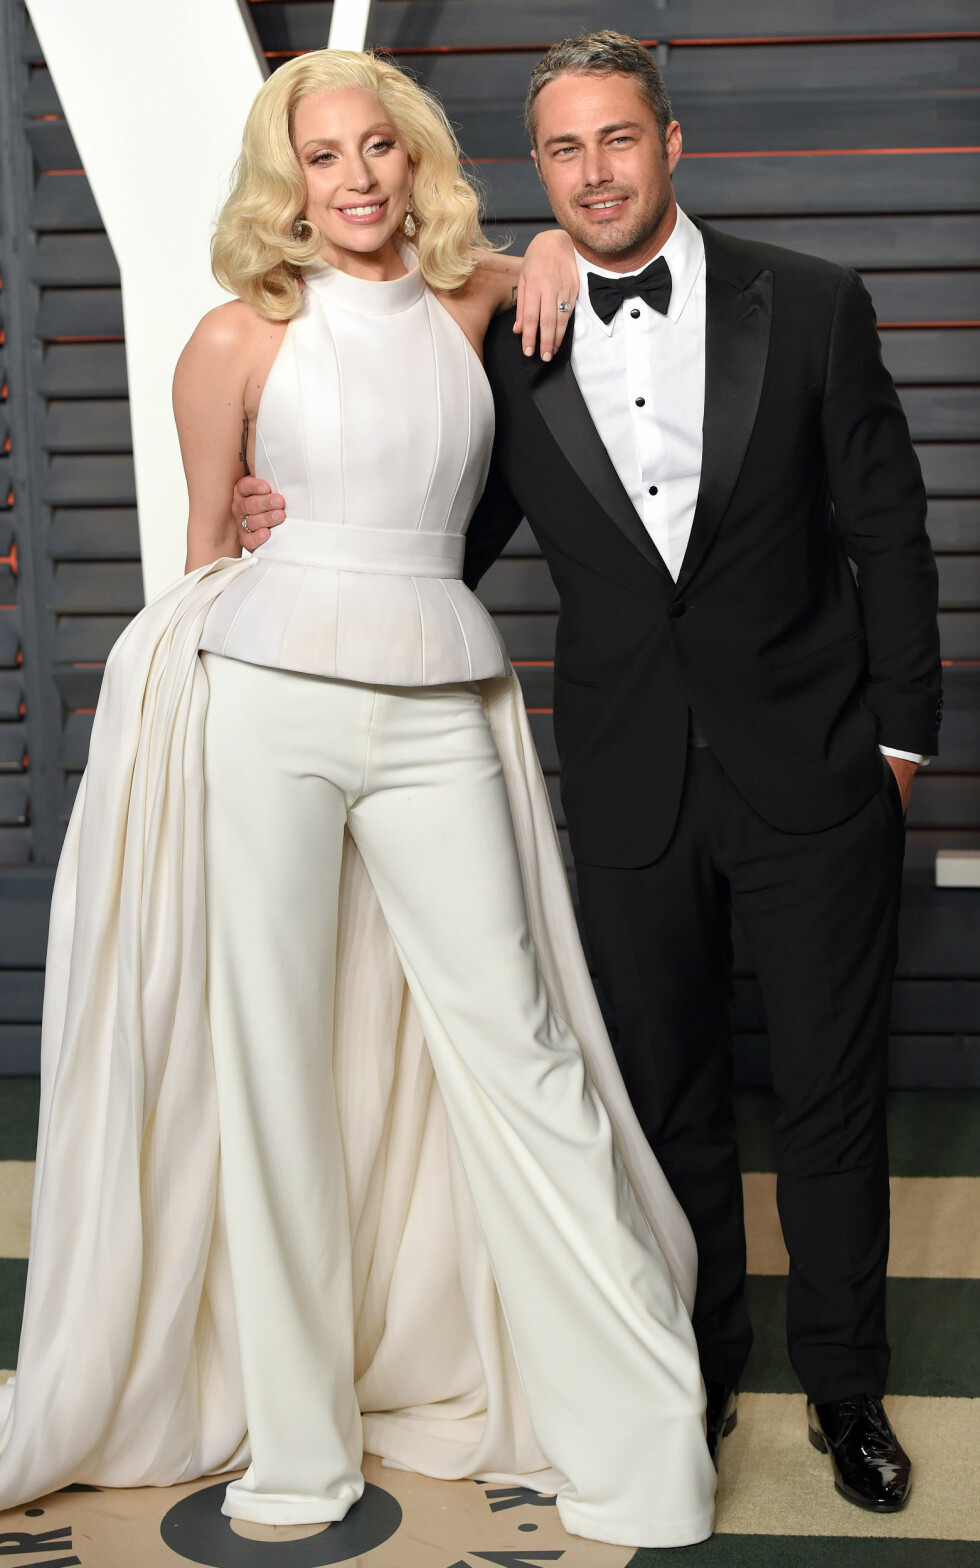 File photo dated 28/02/16 of Lady Gaga and her actor fiance Taylor Kinney who have put their relationship on hold while they deal with the strains of stardom. Foto: Pa Photos